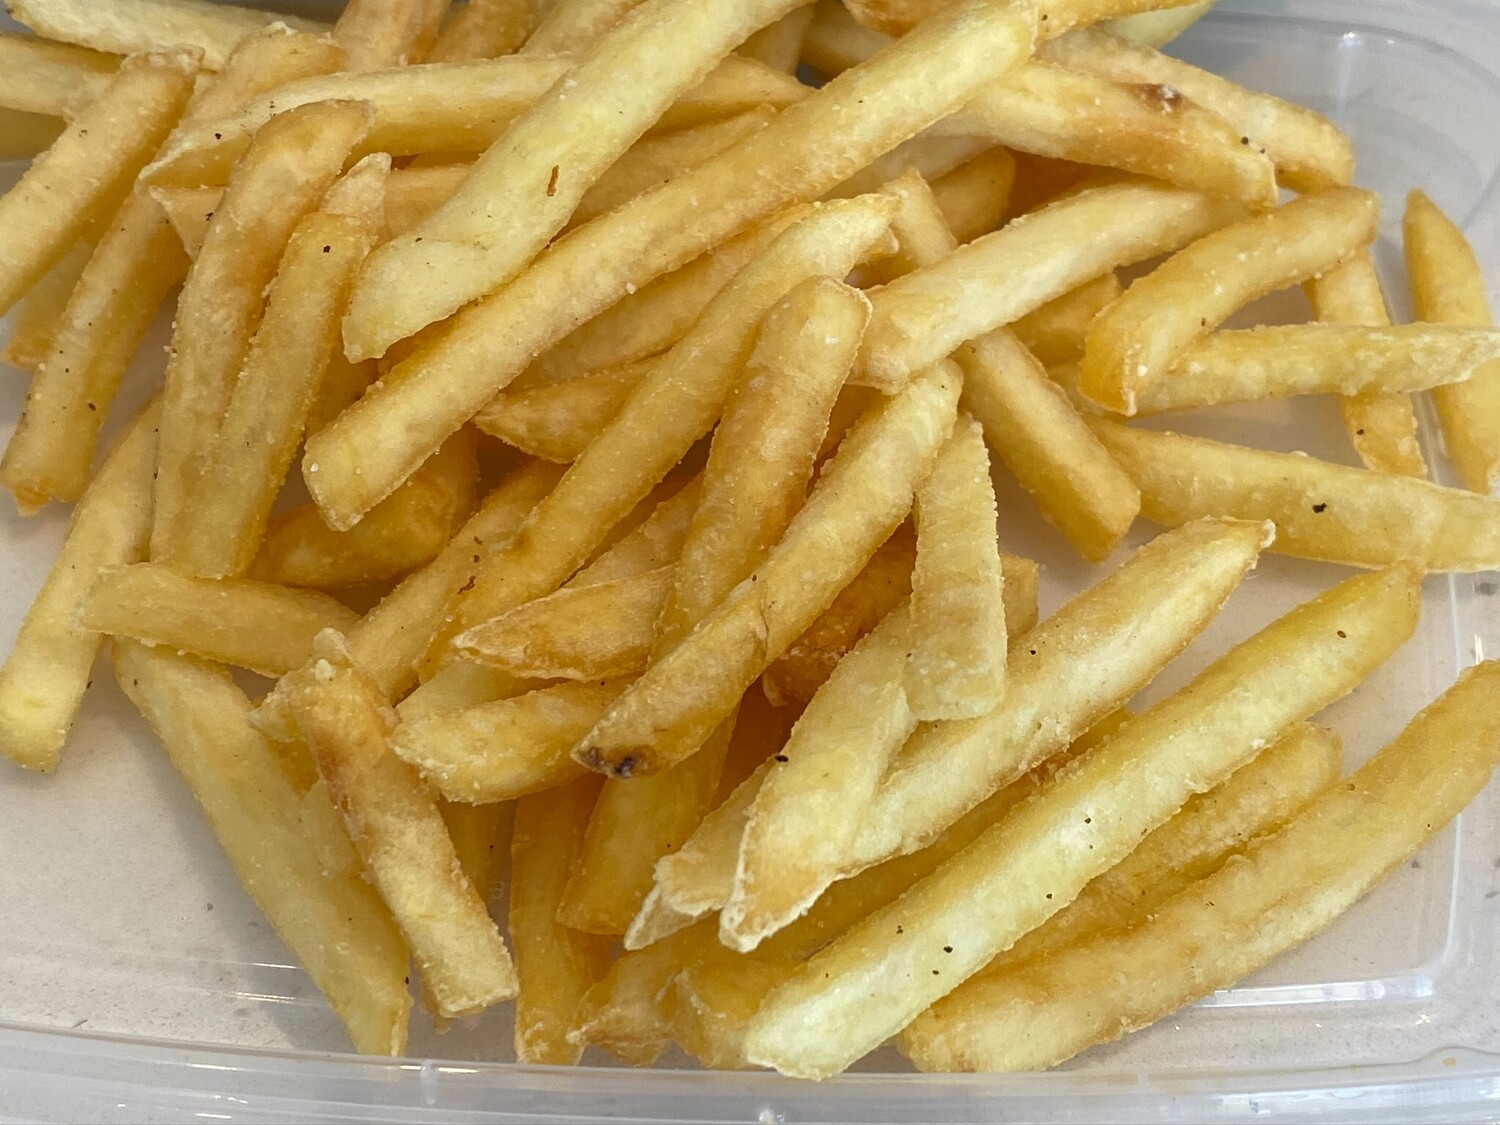 Bowl of Fries (& toppings?)